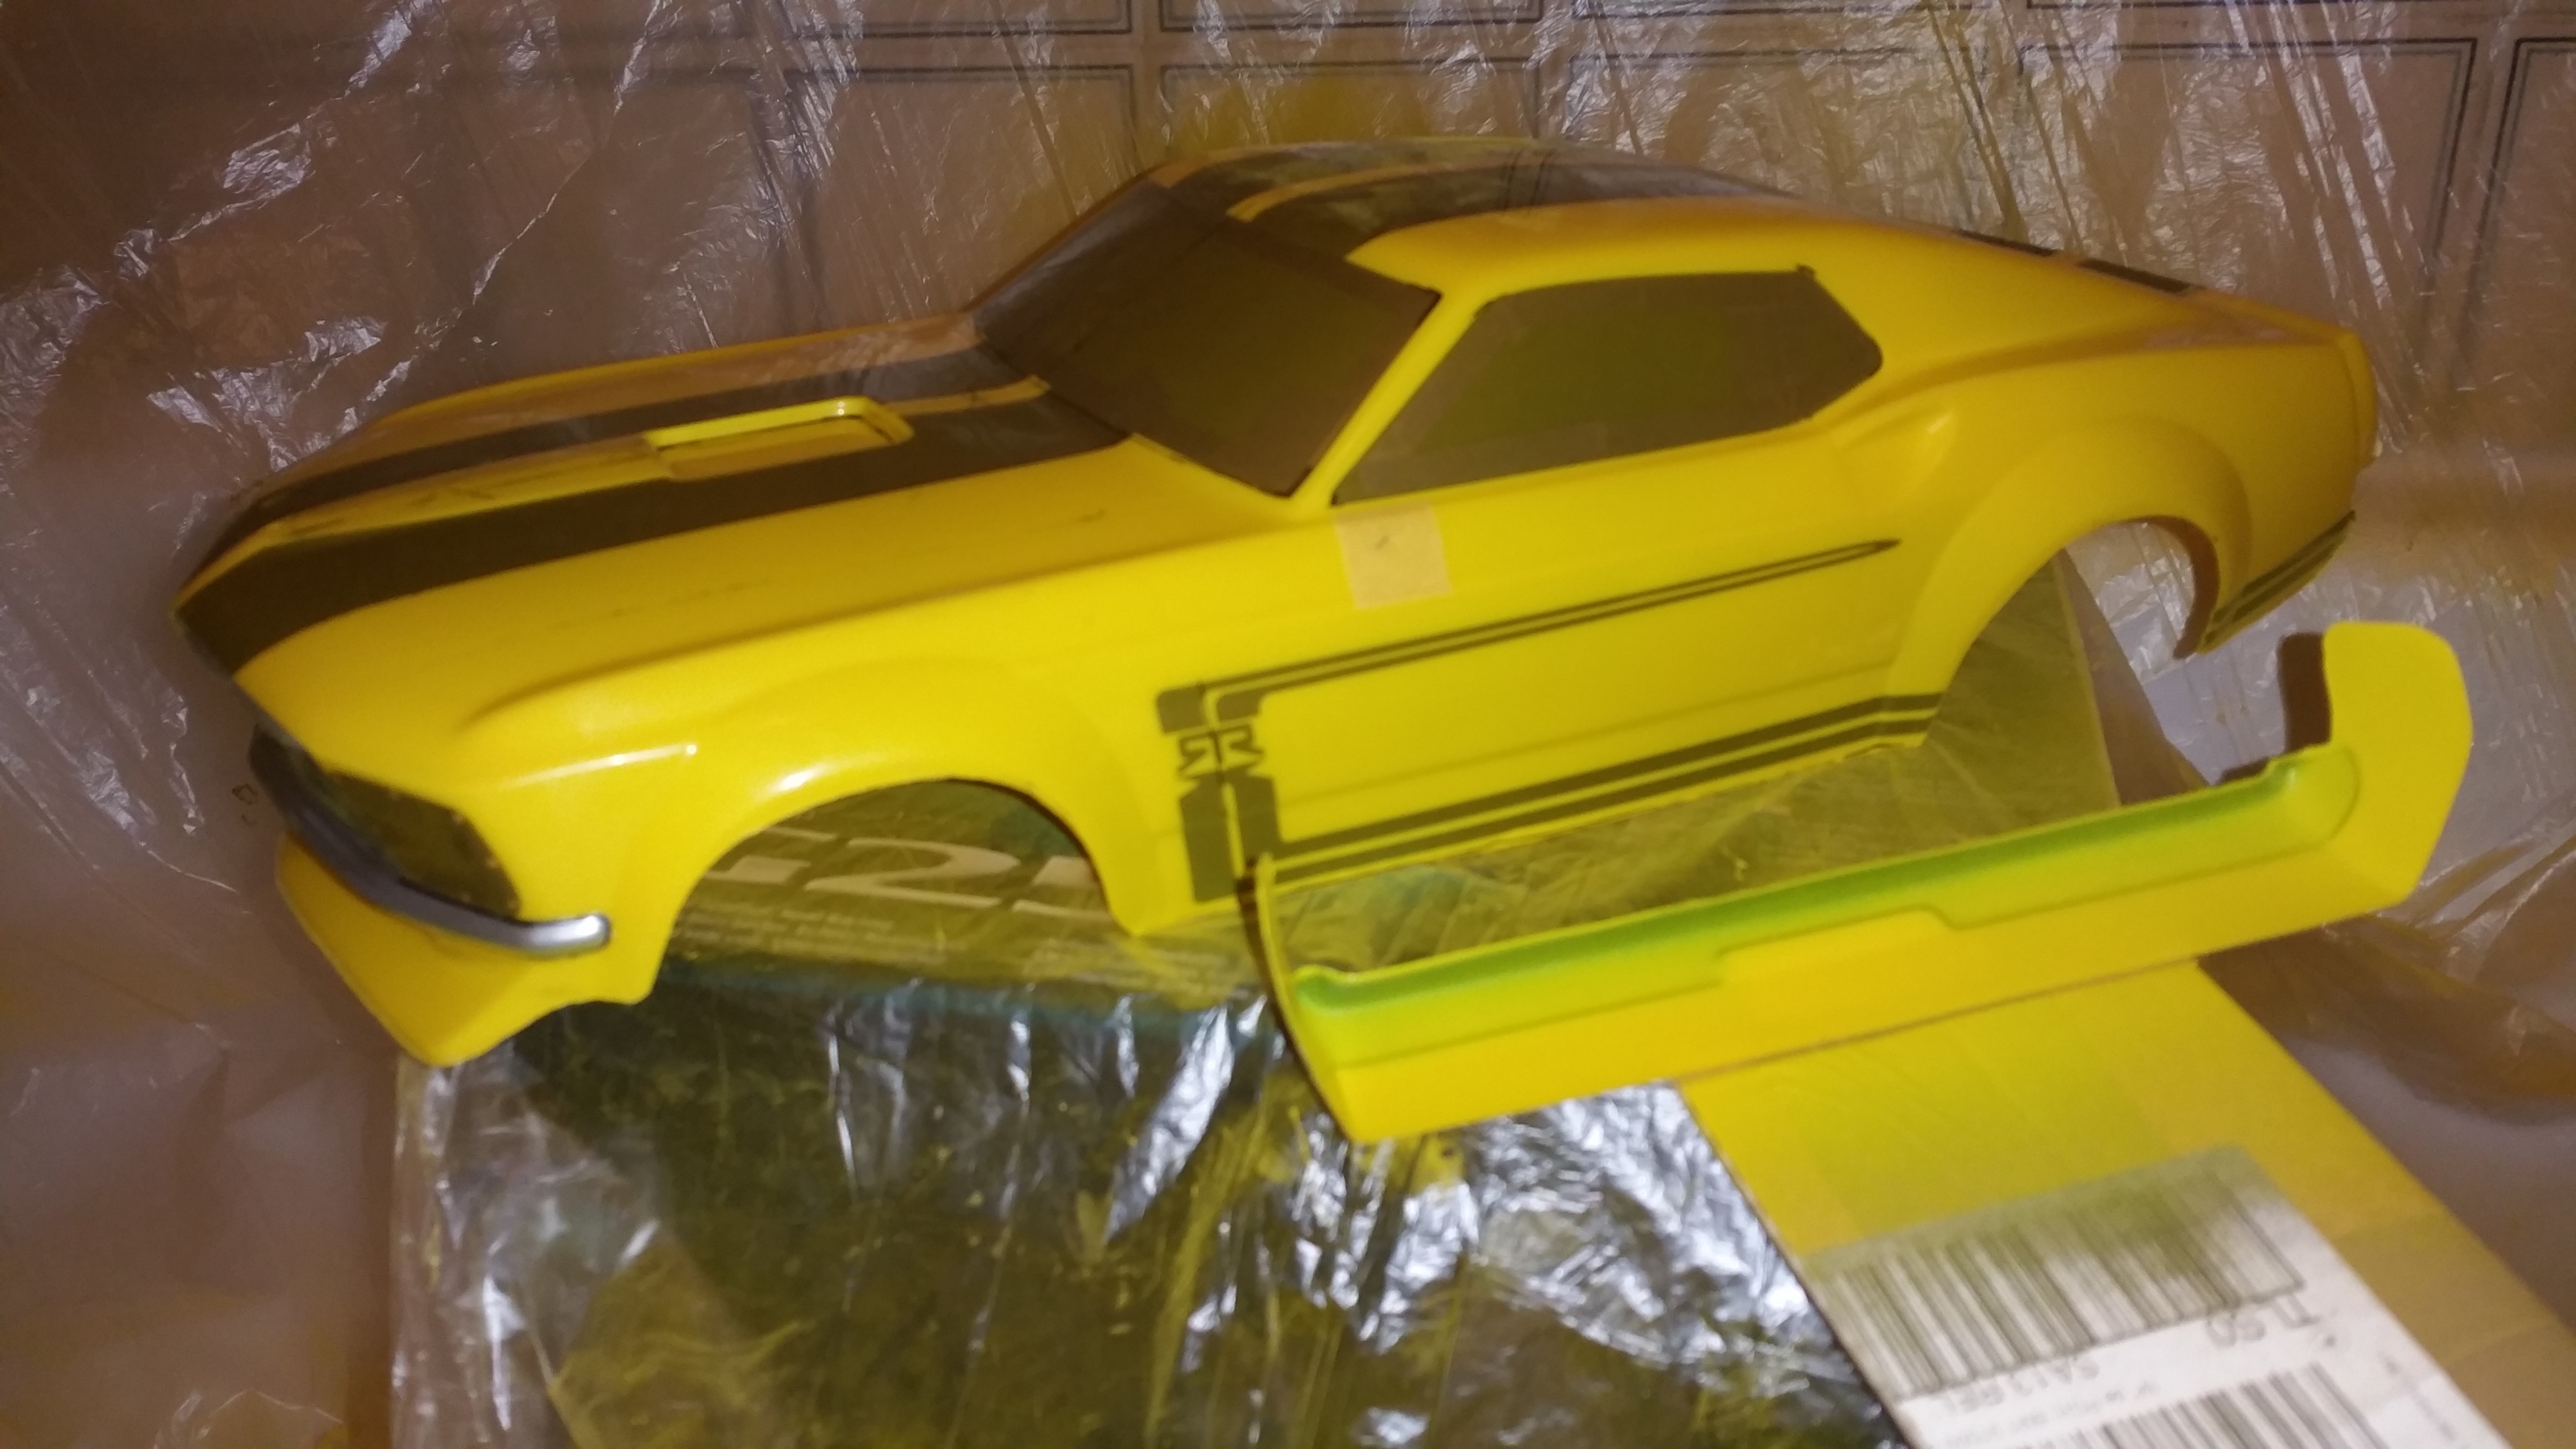 Ford Mustang 69 Boss302 version RTR-X  029x